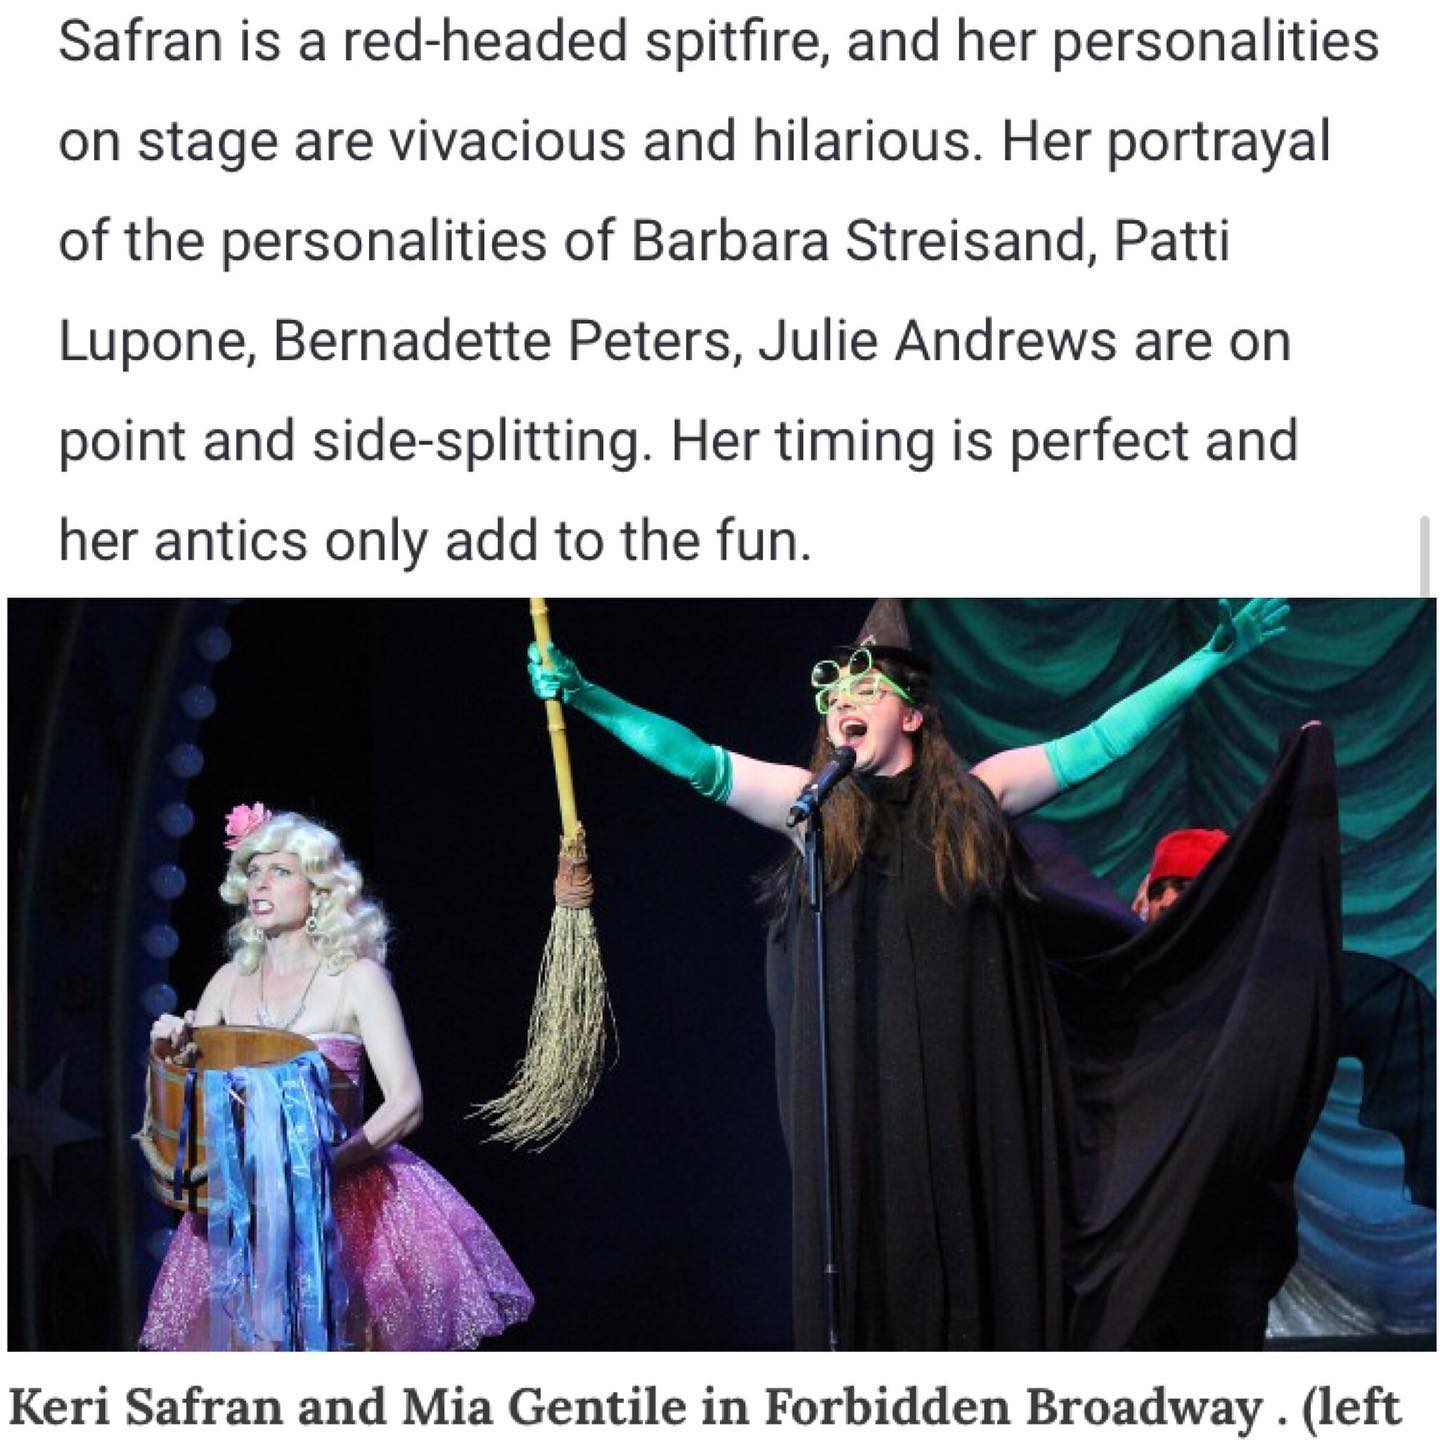 What a joy to perform Forbidden Broadway at The Gateway Playhouse under the direction of creator himself, Gerard Alessandrini! In love with castmates Mia Gentile, Bill Coyne & Chris Collins-Pisano! Mahvelous Stage Management, too, by Spencer Clouse, and led bravely into battle by Music Director Robbie Felstein!!  Impressions: Bebe Neuwirth, Julie Andrews, Bernadette Peters, Barbra Streisand, Patti LuPone, Rita Morena, Kristen Chenowith…am I missing anyone?